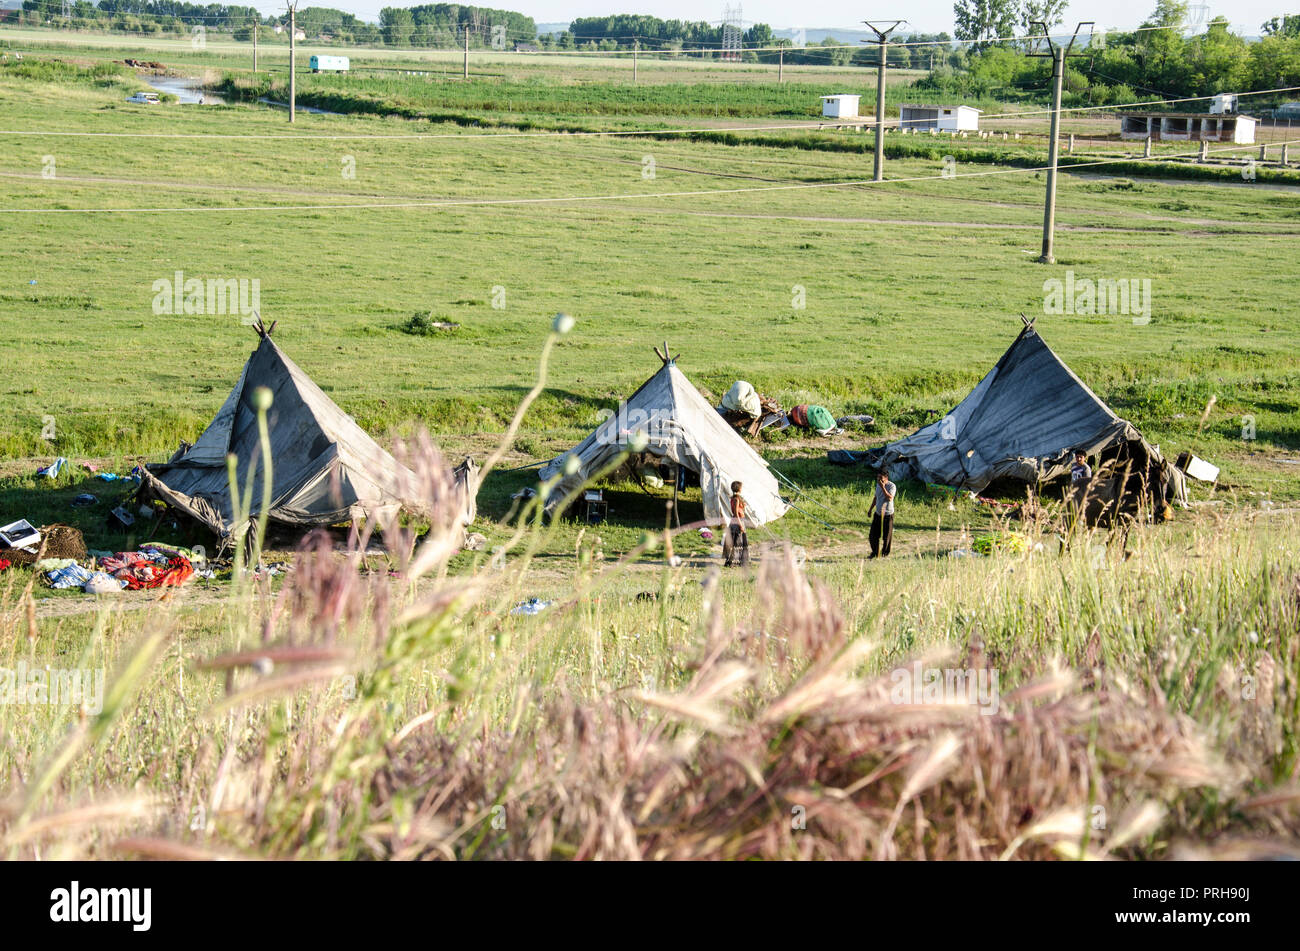 Romanian Gypsy Camp - Editorial - Racism - Discrimination - Tradition - Stock Image